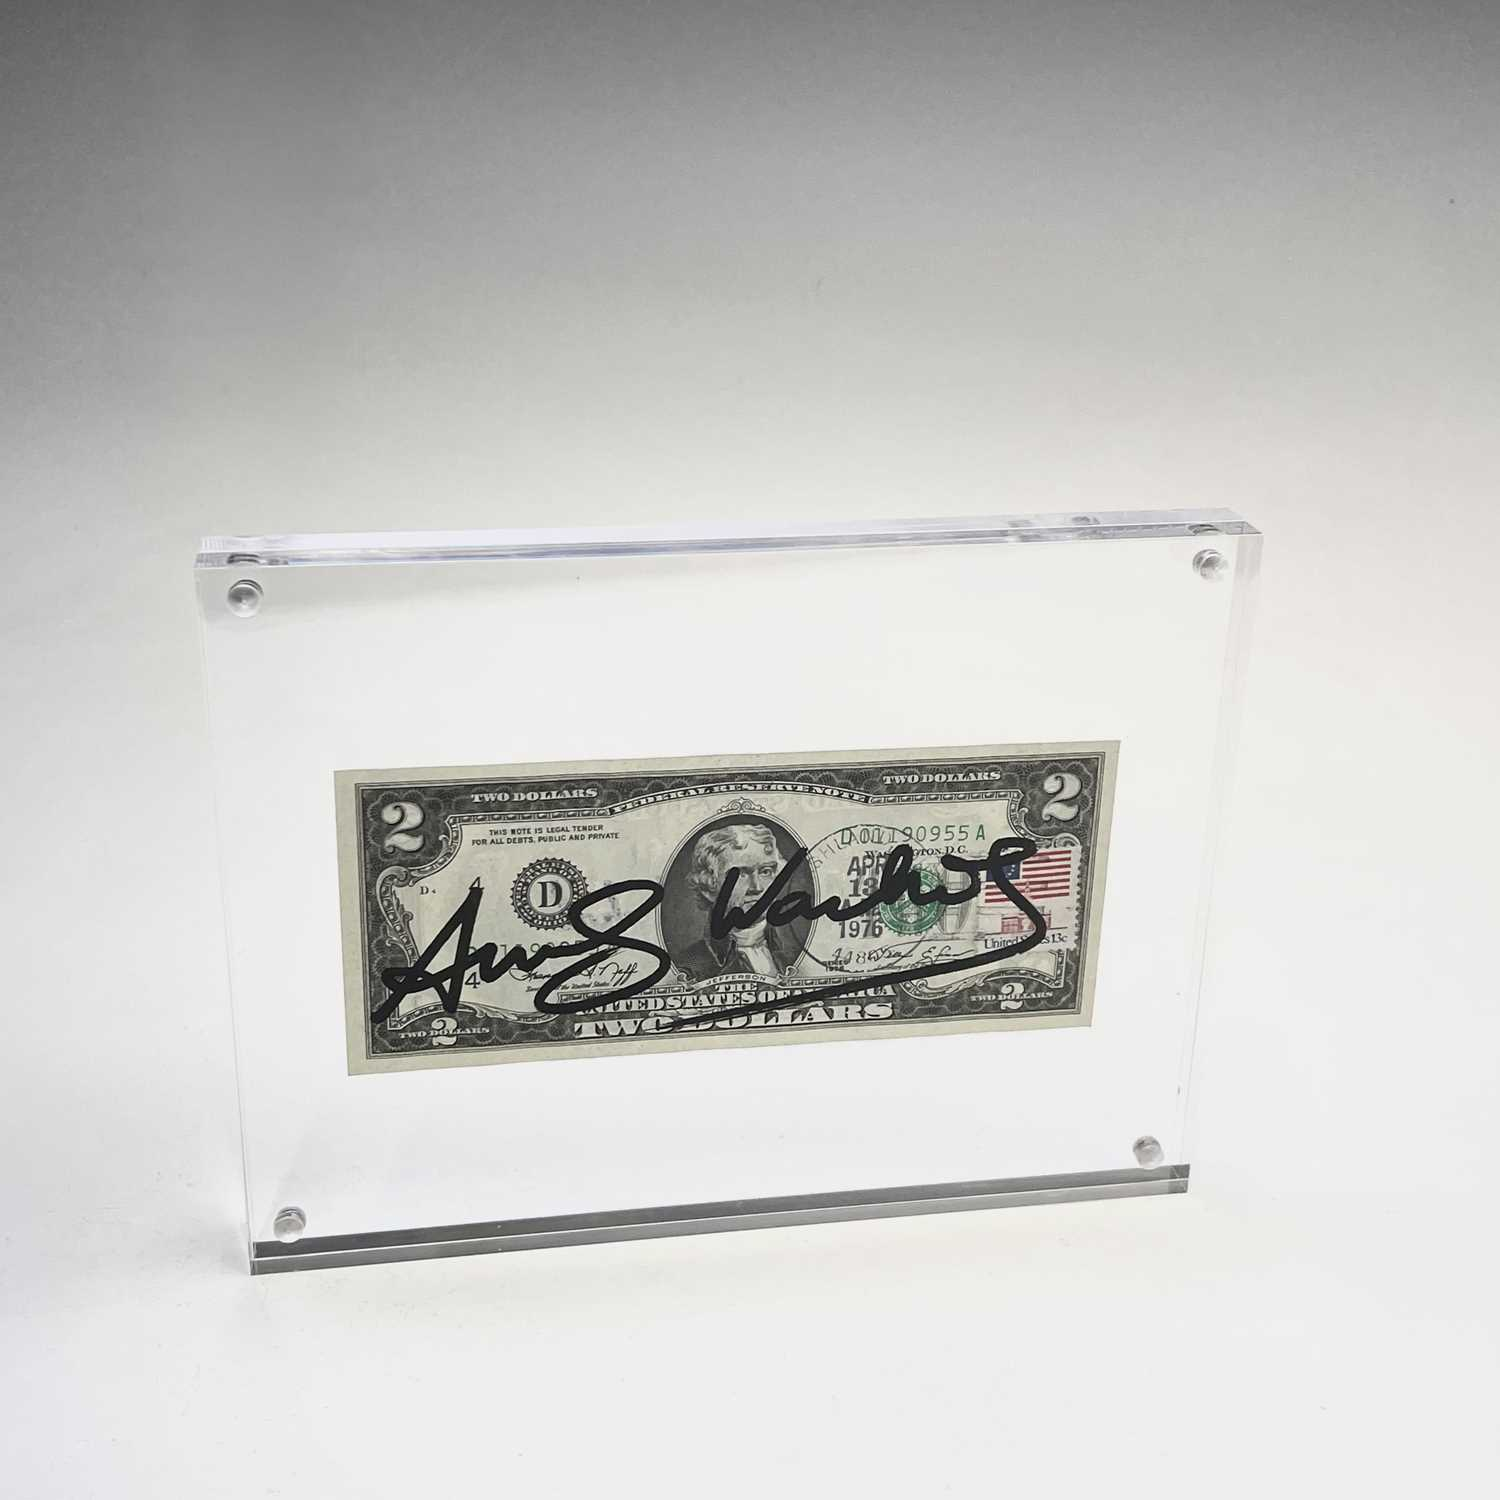 After Andy Warhol, a two-dollar banknote, bears signature, together with accompanying paperwork. - Image 10 of 10